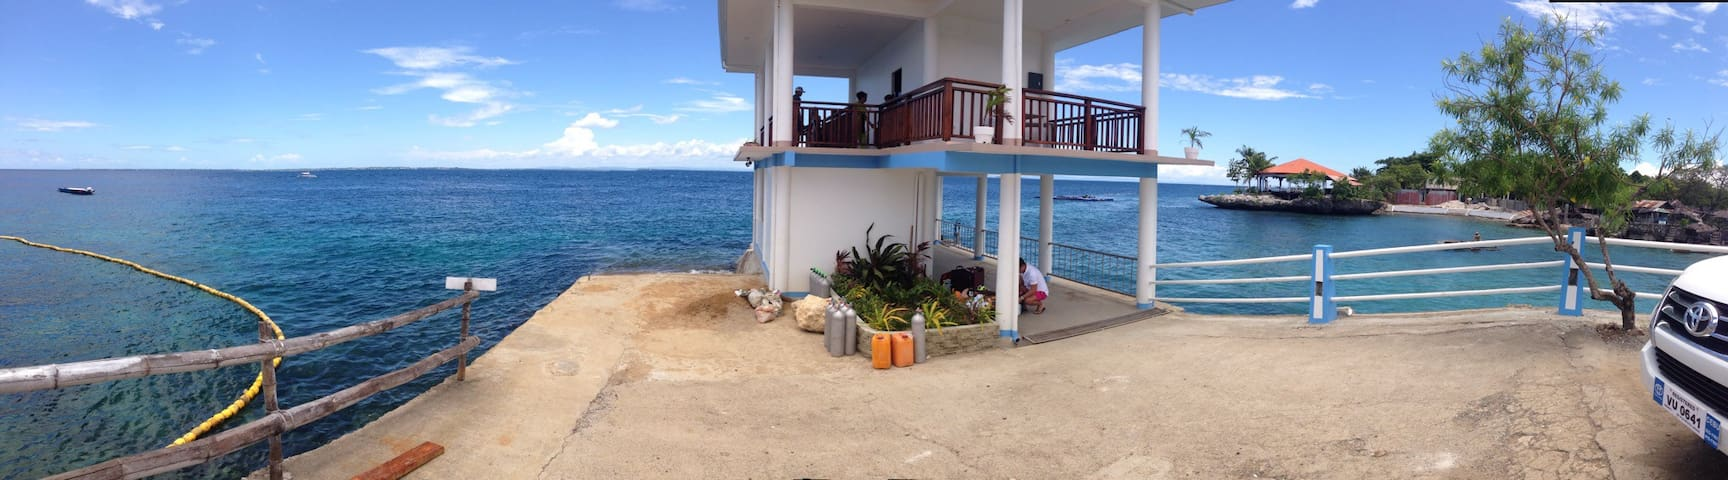 Summer Beach House by Blue Waters - Lapu-Lapu City - Hus